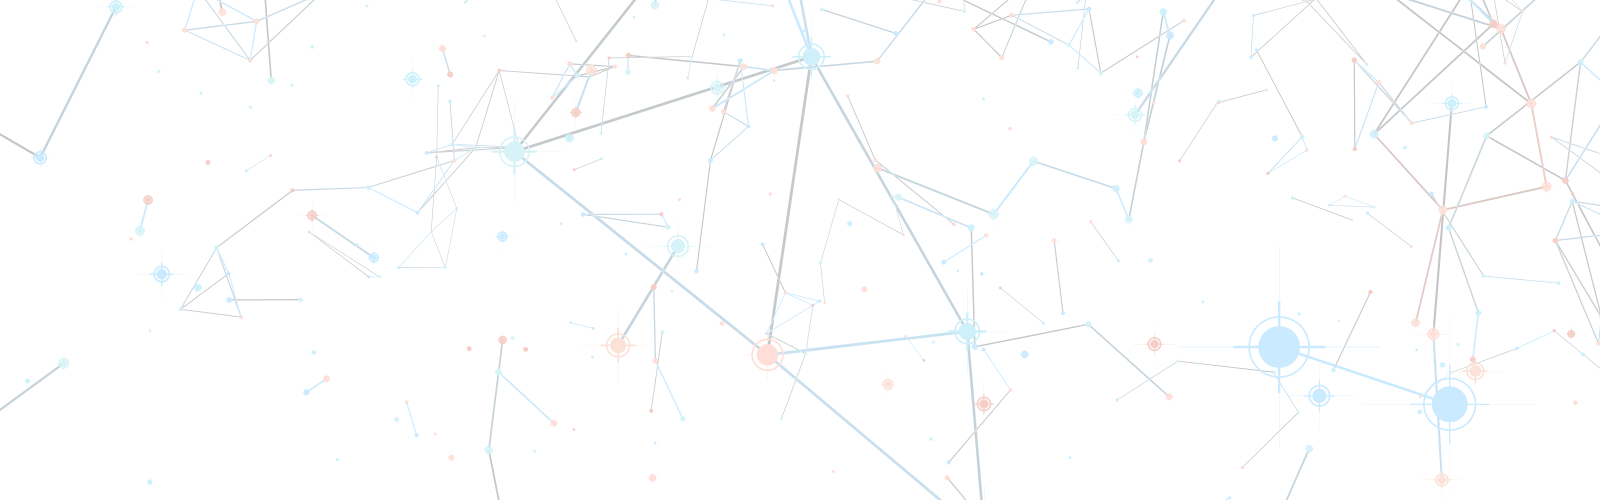 Scattered dots connected by lines.